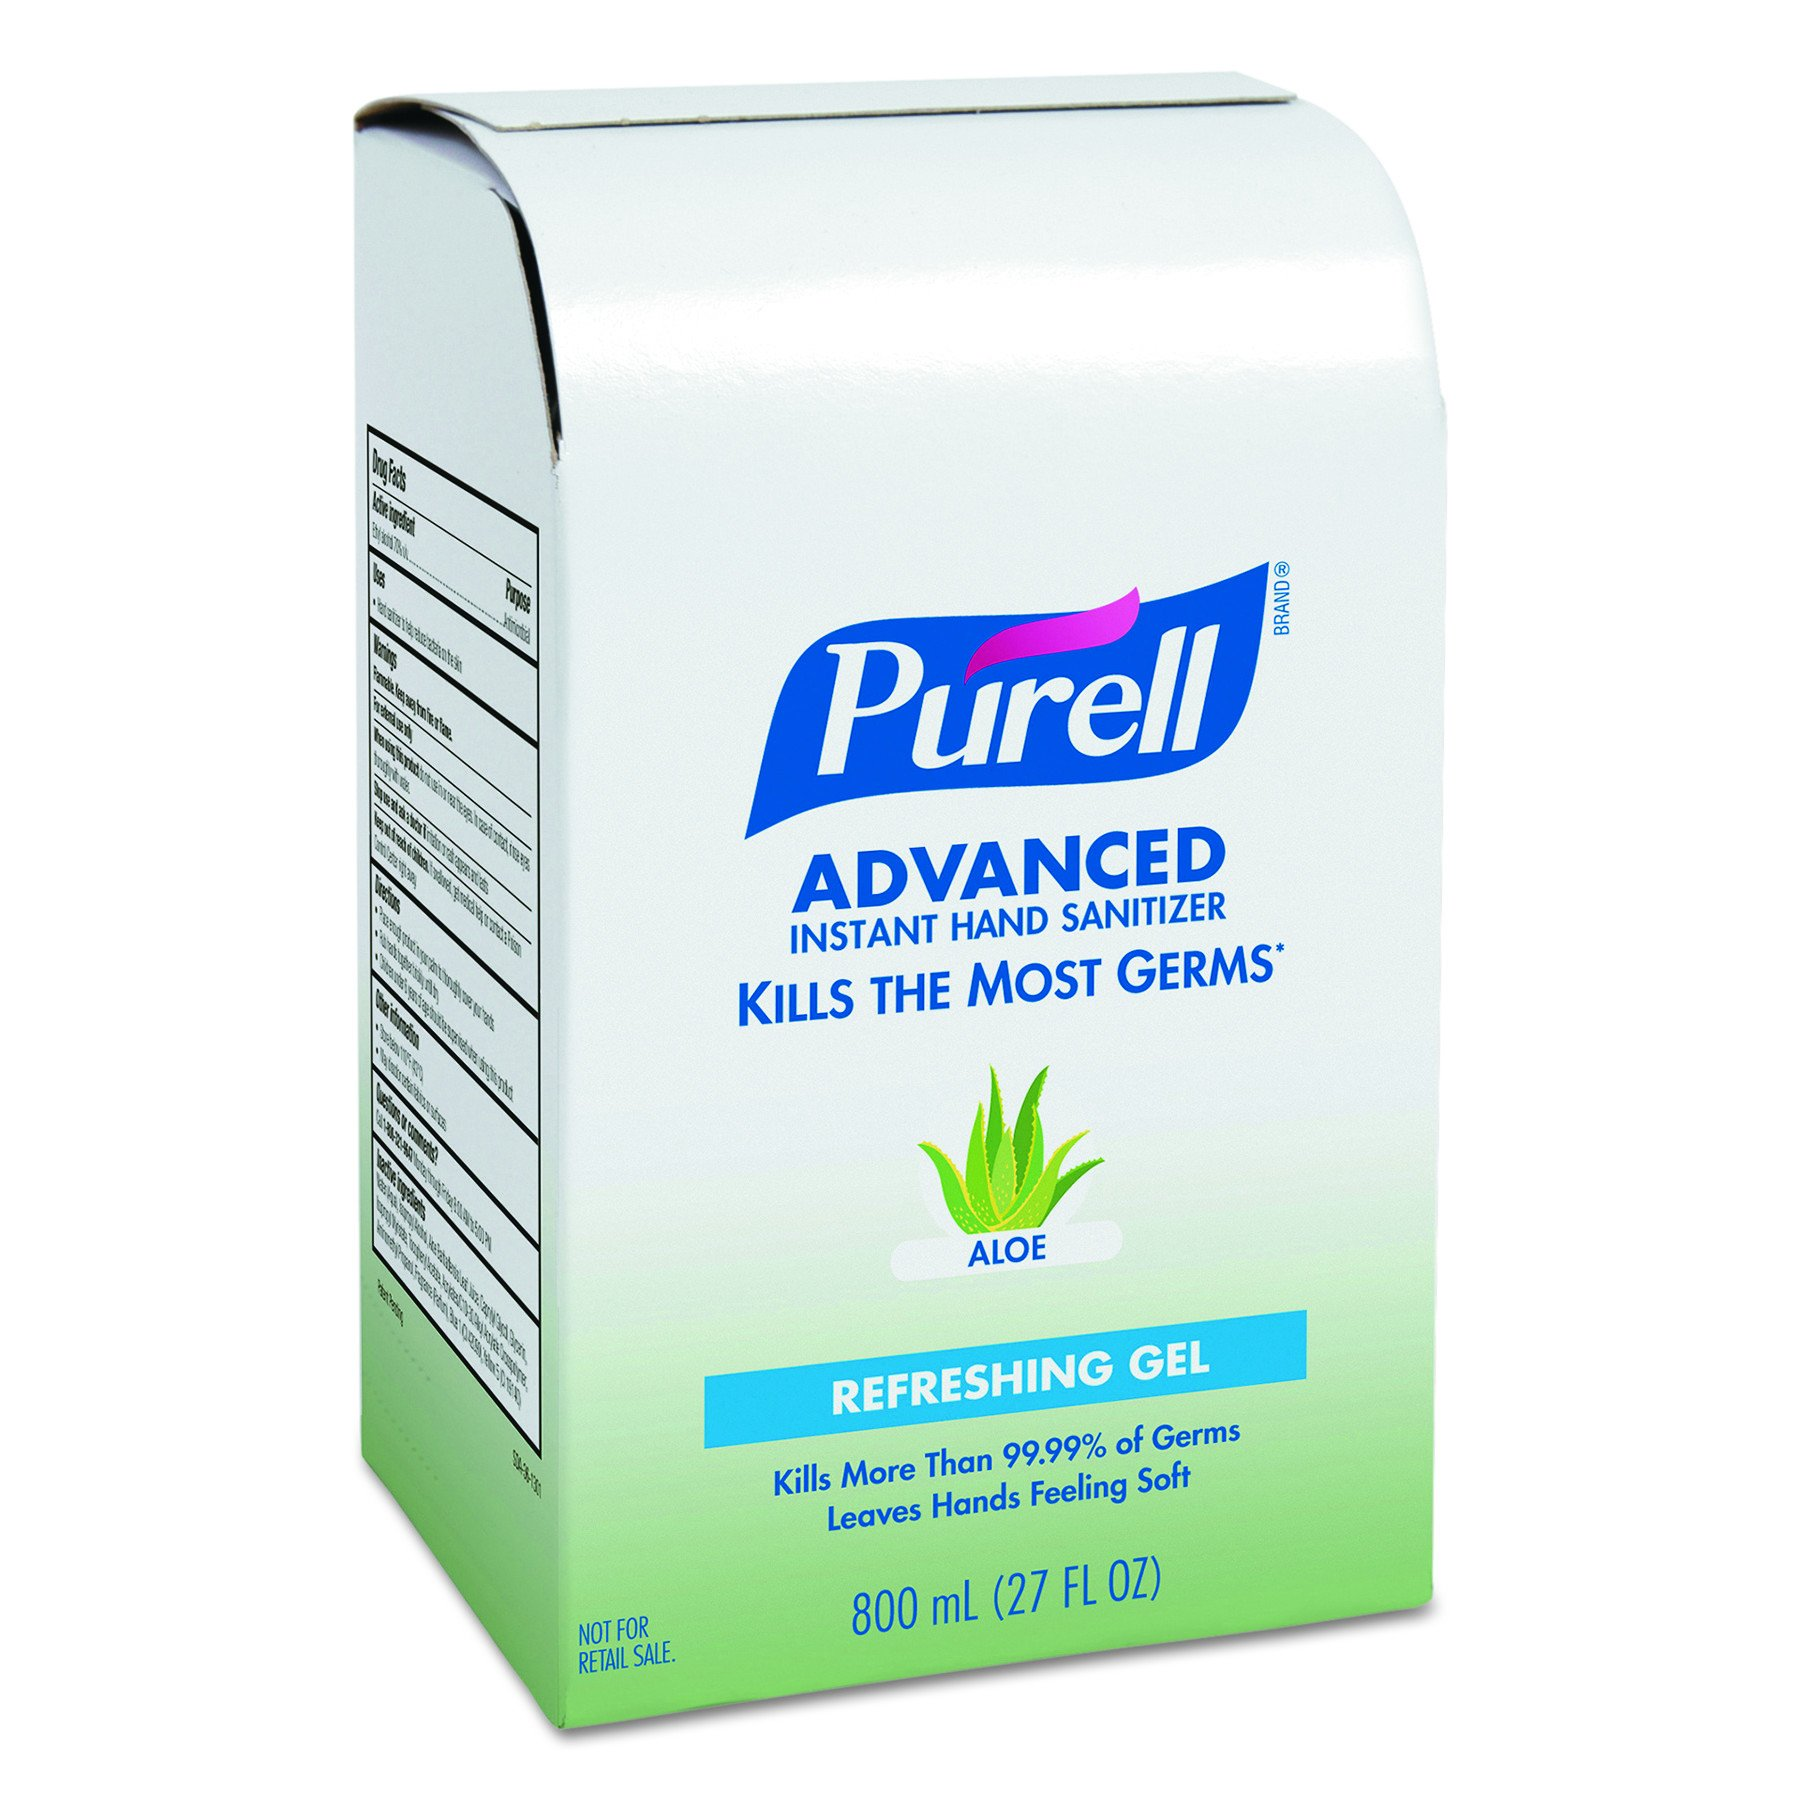 PURELL 9637 Instant Hand Sanitizer 800mL Refill, Aloe (Case of 12)